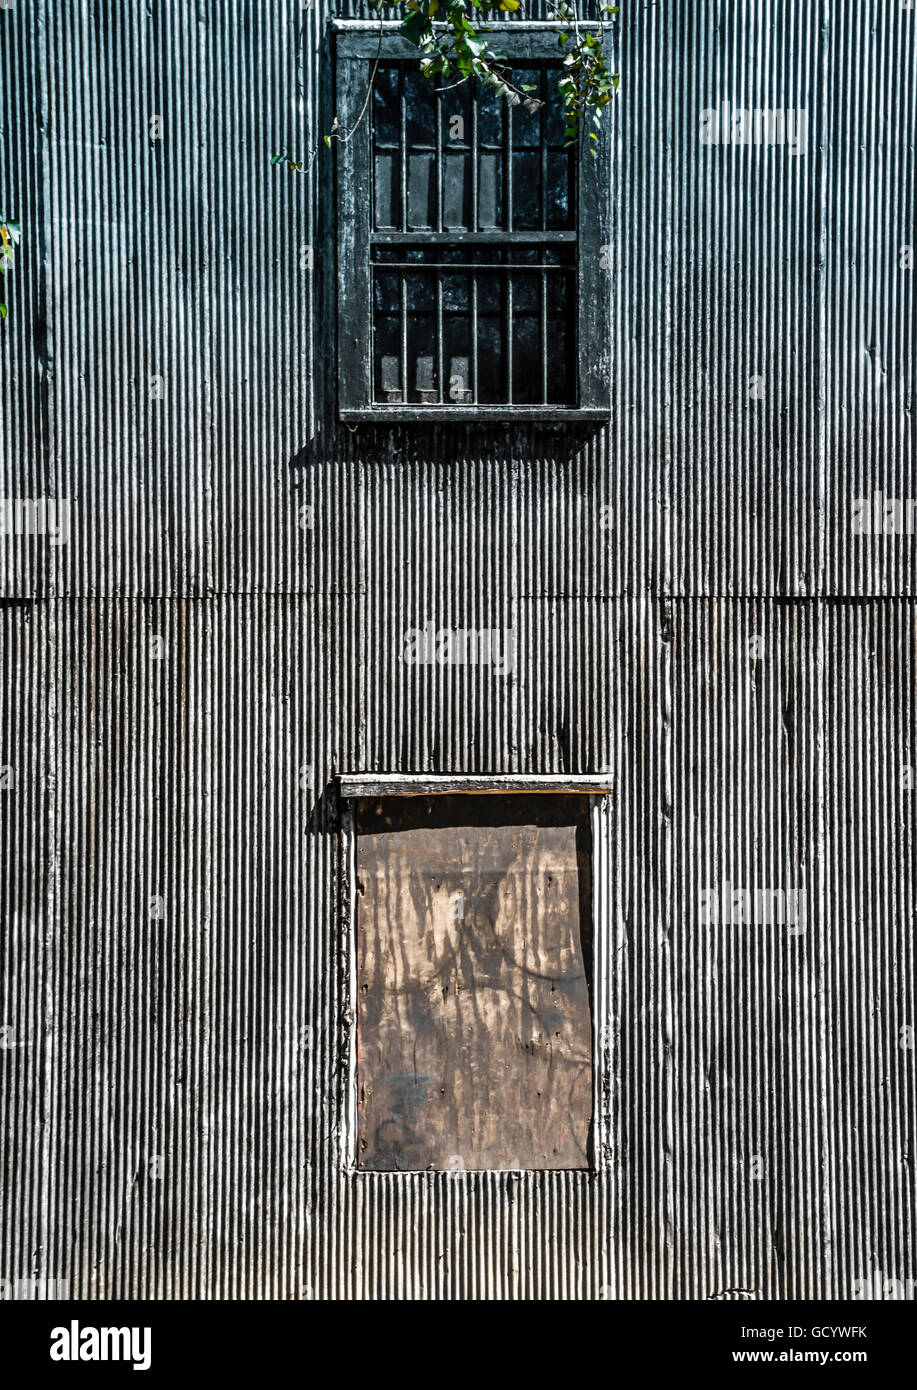 Close up of an old dark, large corrugated metal building with boarded up windows and bars looks abandoned, mysterious - Stock Image